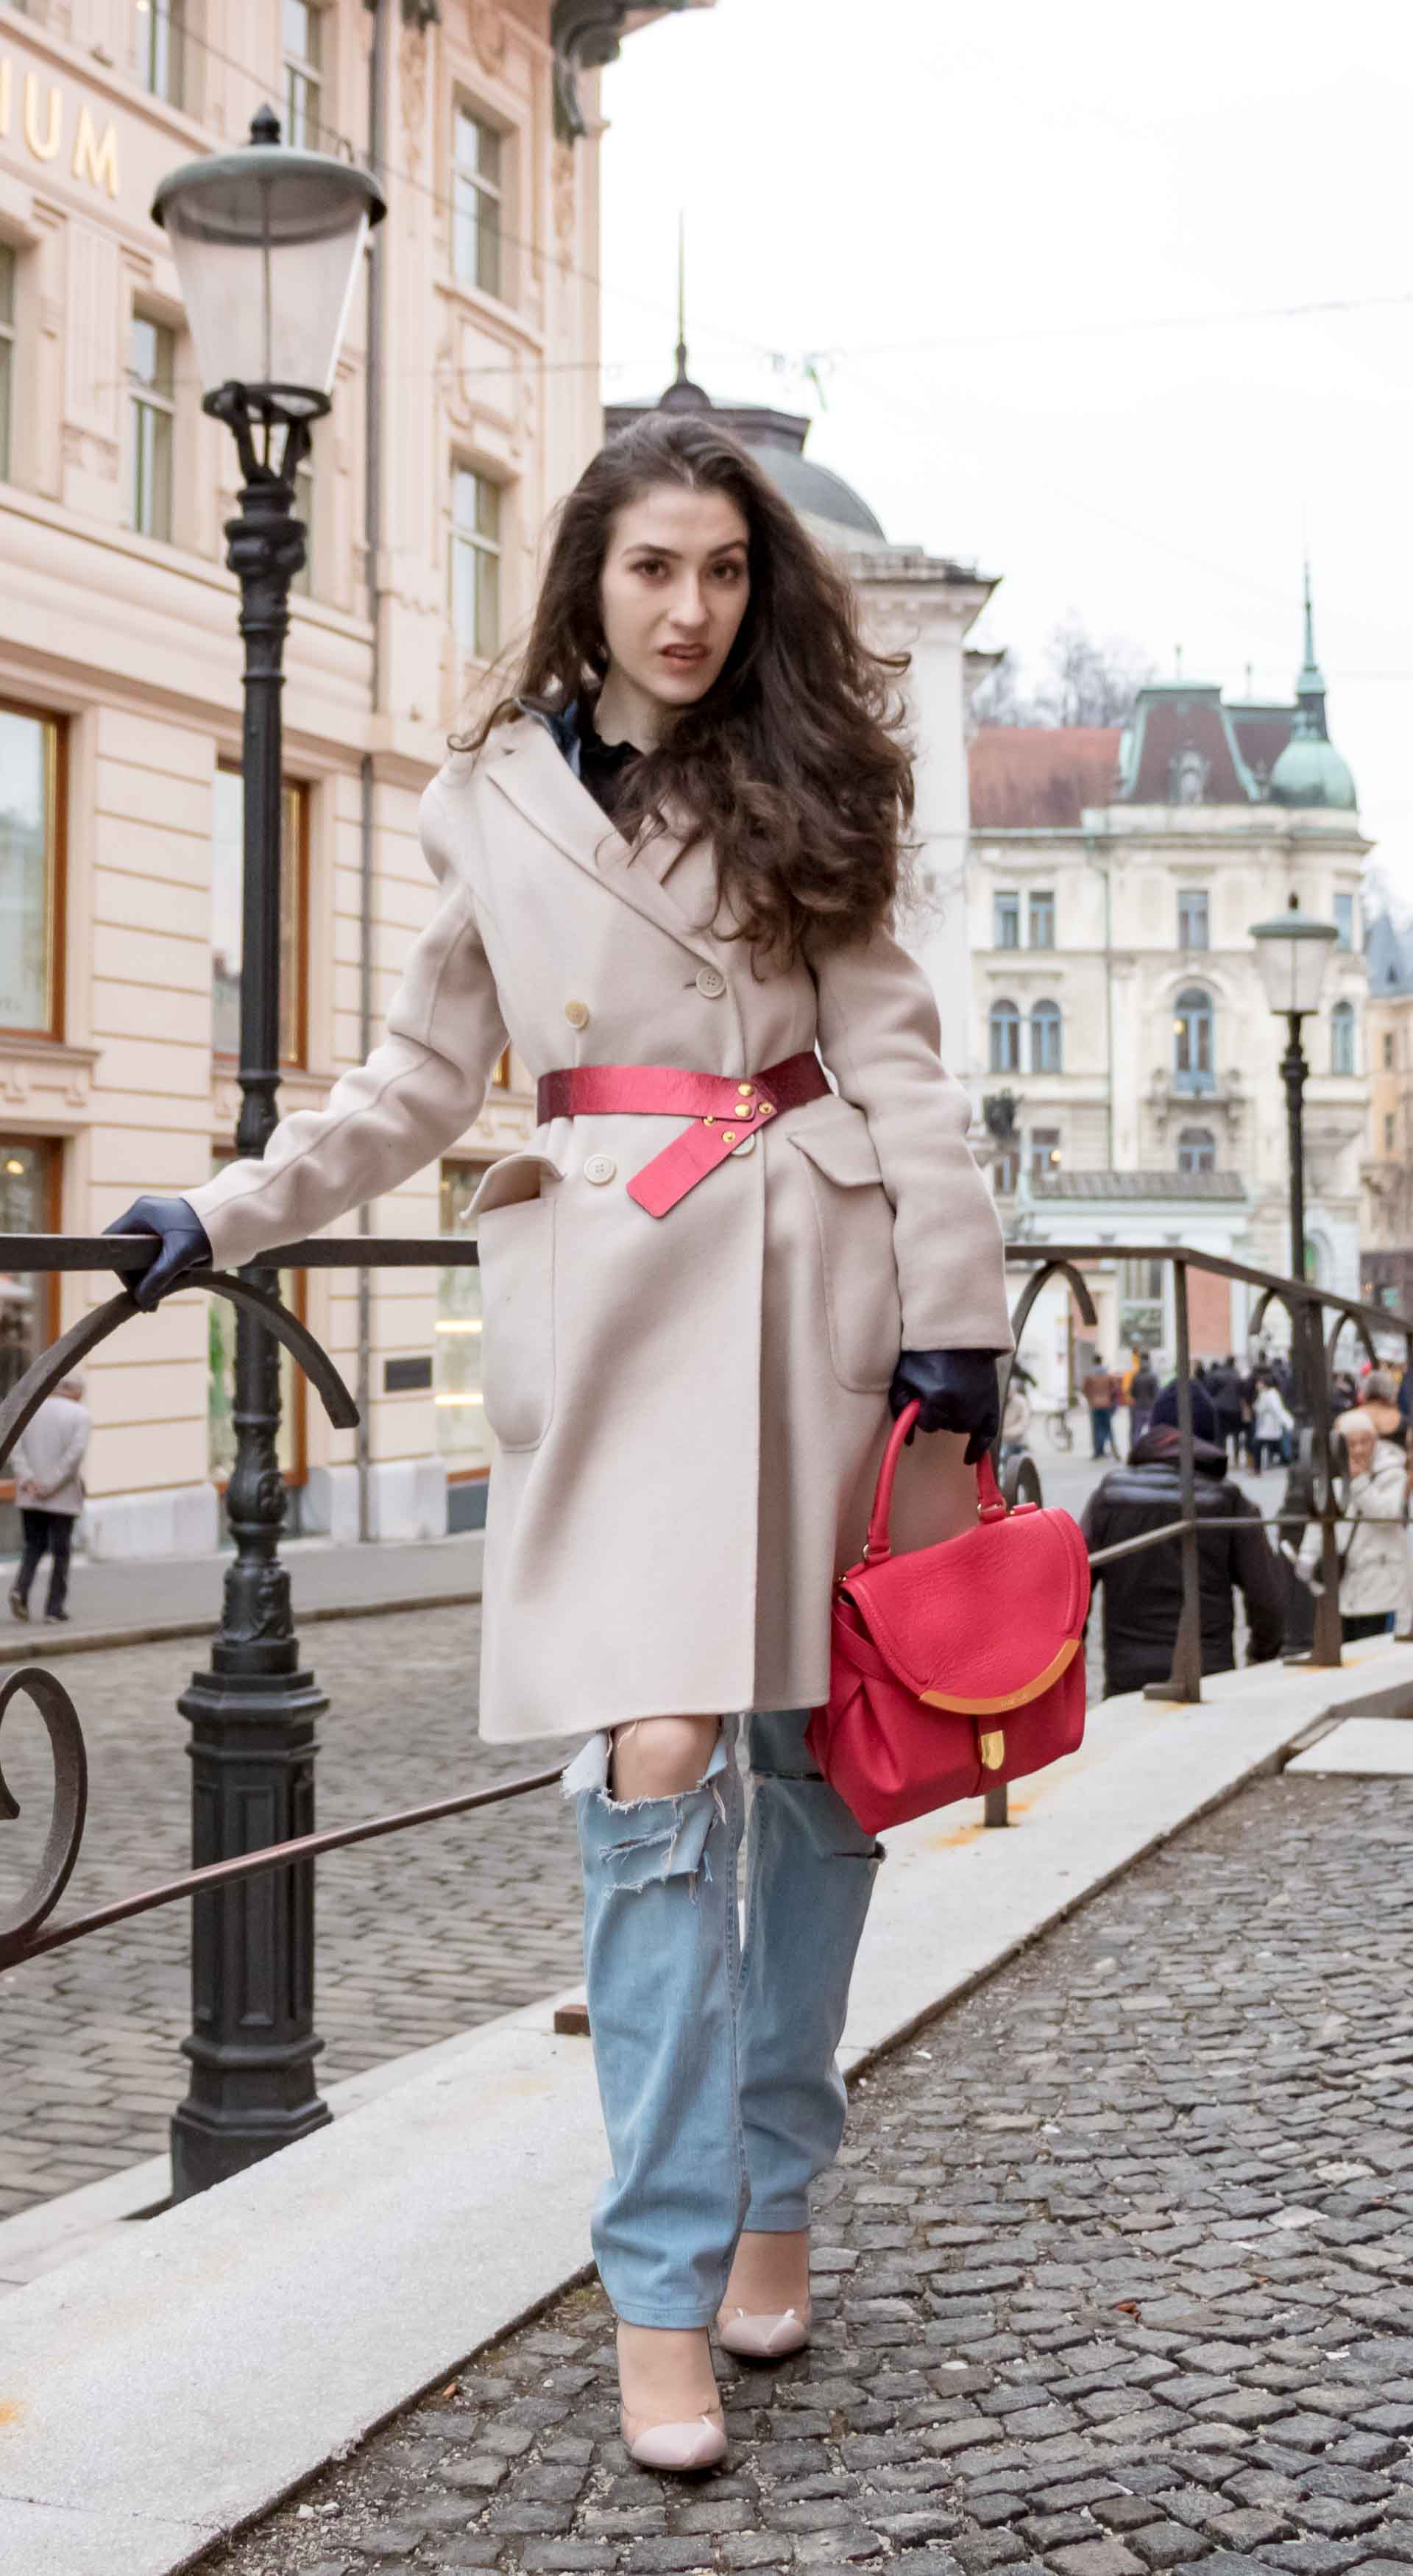 Fashion Blogger Veronika Lipar of Brunette from Wall Street wearing distressed blue Levi's jeans, off-white double breasted Weekend Maxmara coat, red dangling belt, blush Gianvito Rossi plexi pumps, See by Chloe pink top handle bag, blue leather gloves leaning on the fence on the street of Ljubljana